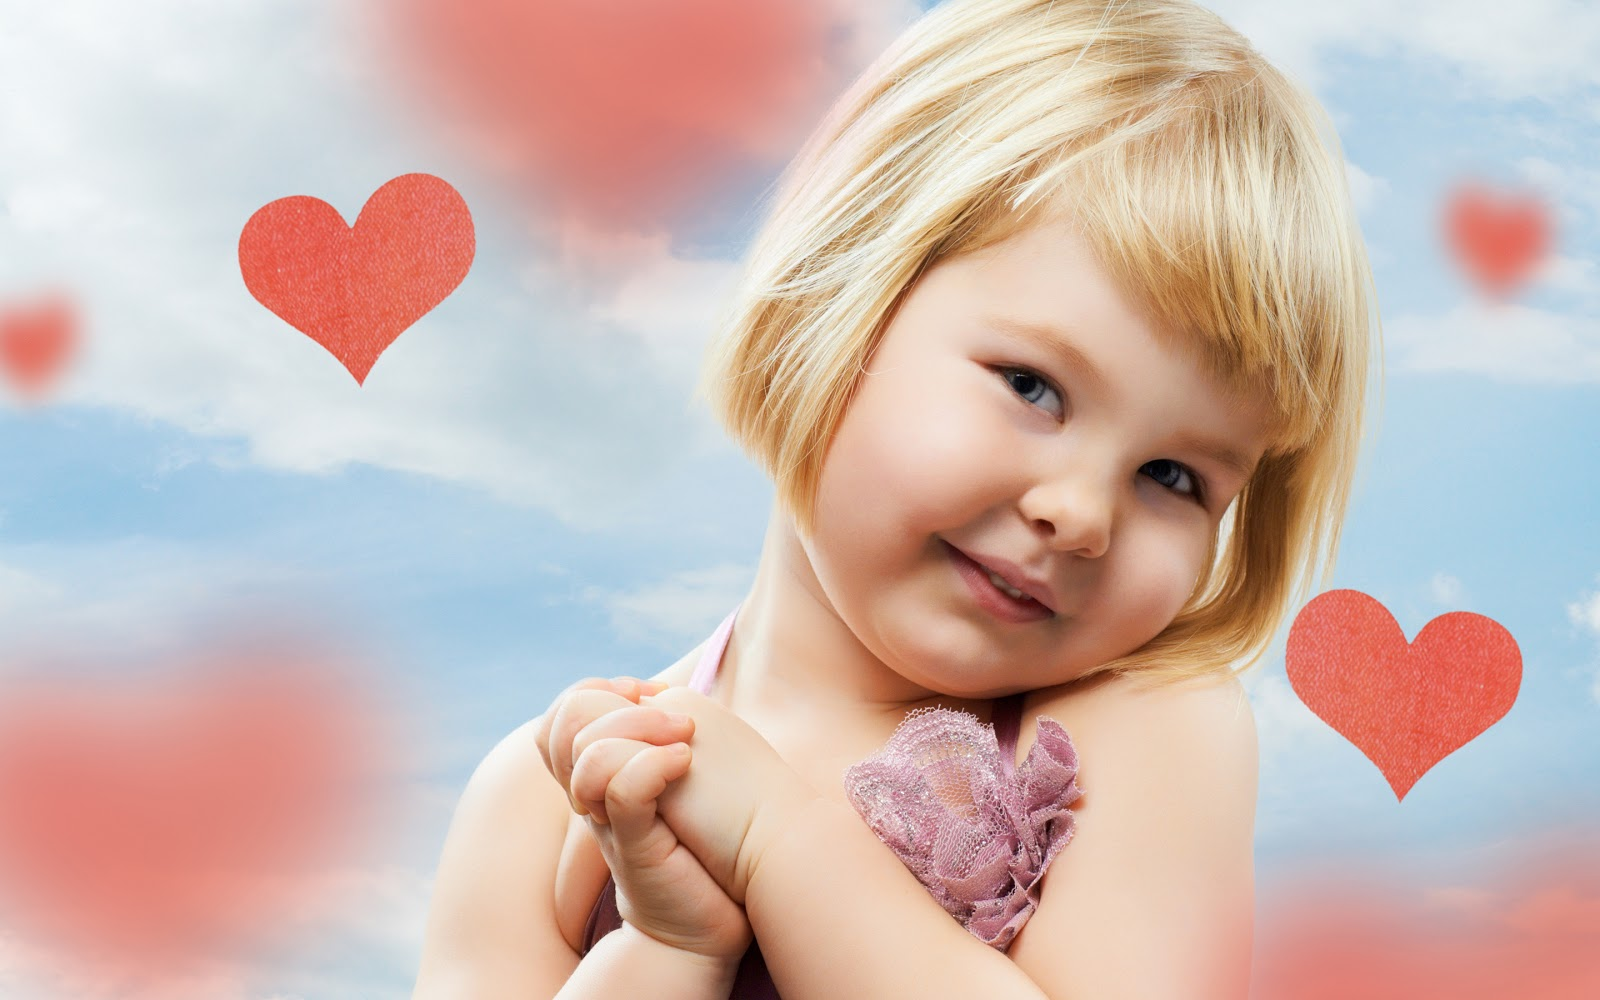 http://1.bp.blogspot.com/-pD-tx4Vea1M/UMhqmKrBzwI/AAAAAAAABss/2AG_GiEsl6c/s1600/cute-and-beautiful-baby-wallpaper-2013-04.jpg